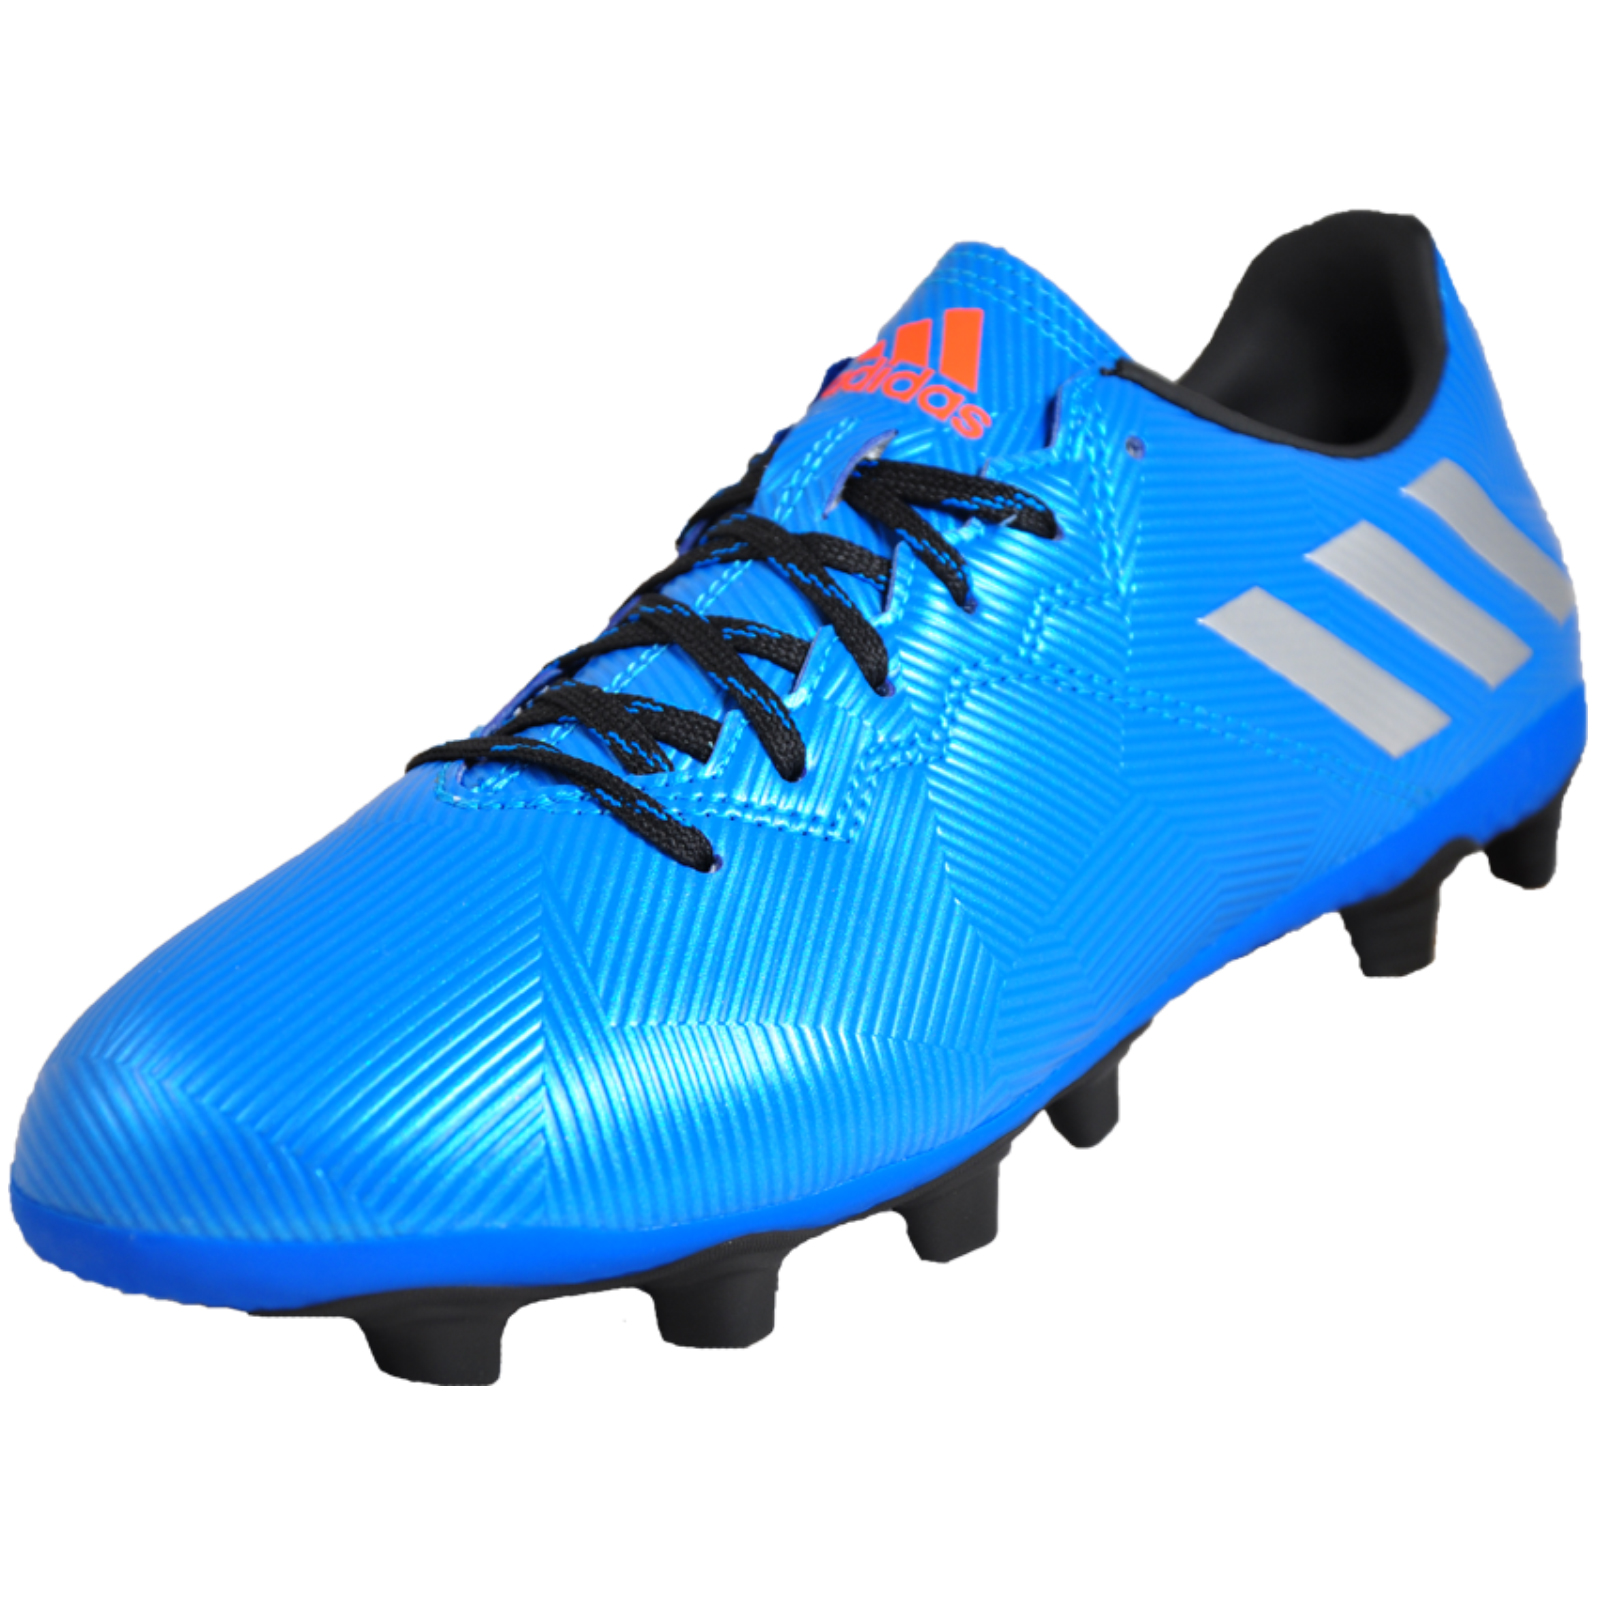 95967650a Adidas 16.4 FXG Messi Men s Premium Performance Football Boots Blue ...